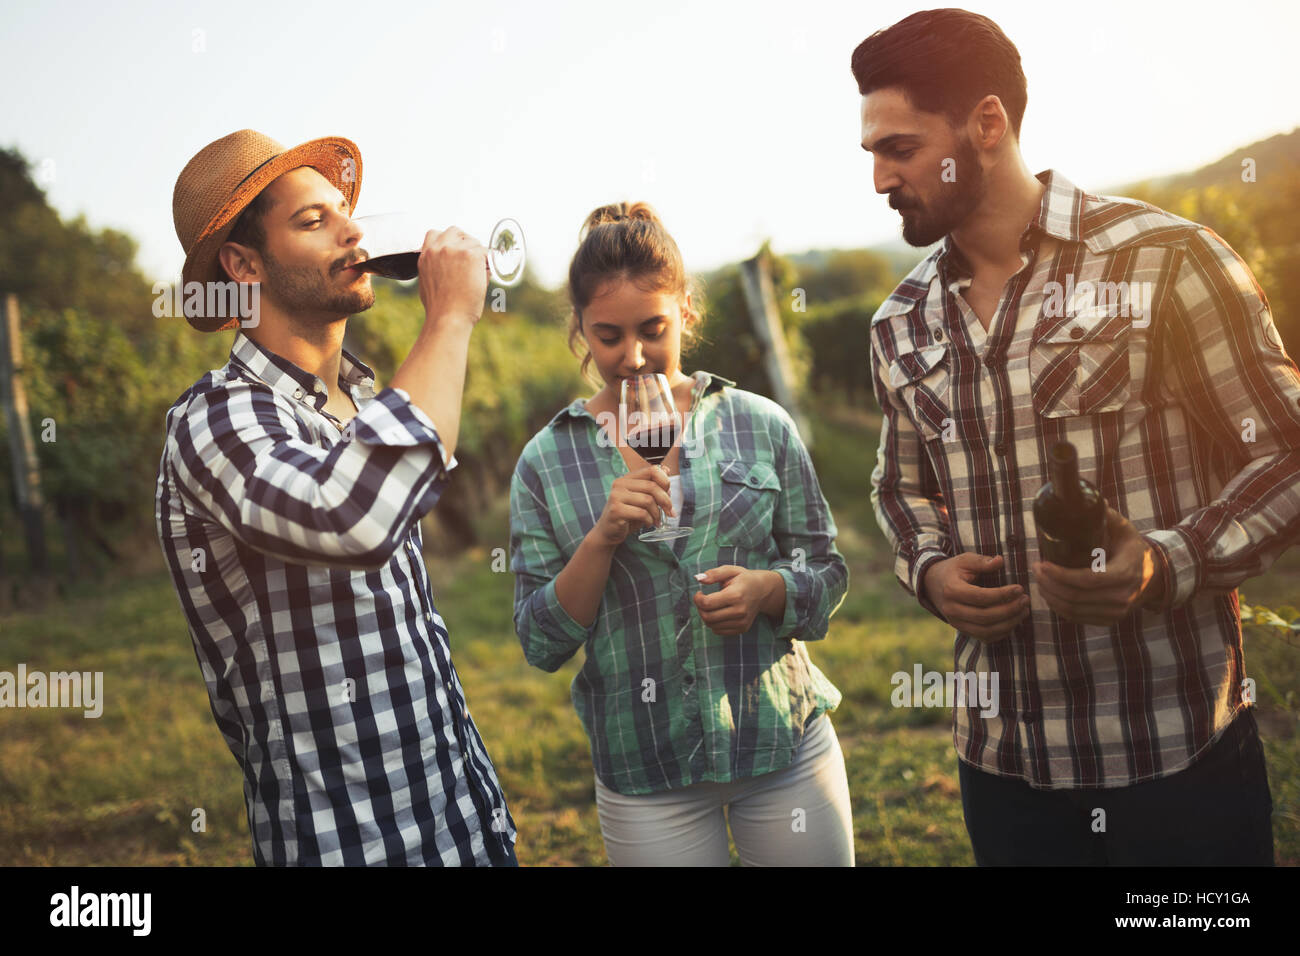 Happy wine tourists tasting wine in vineyard - Stock Image